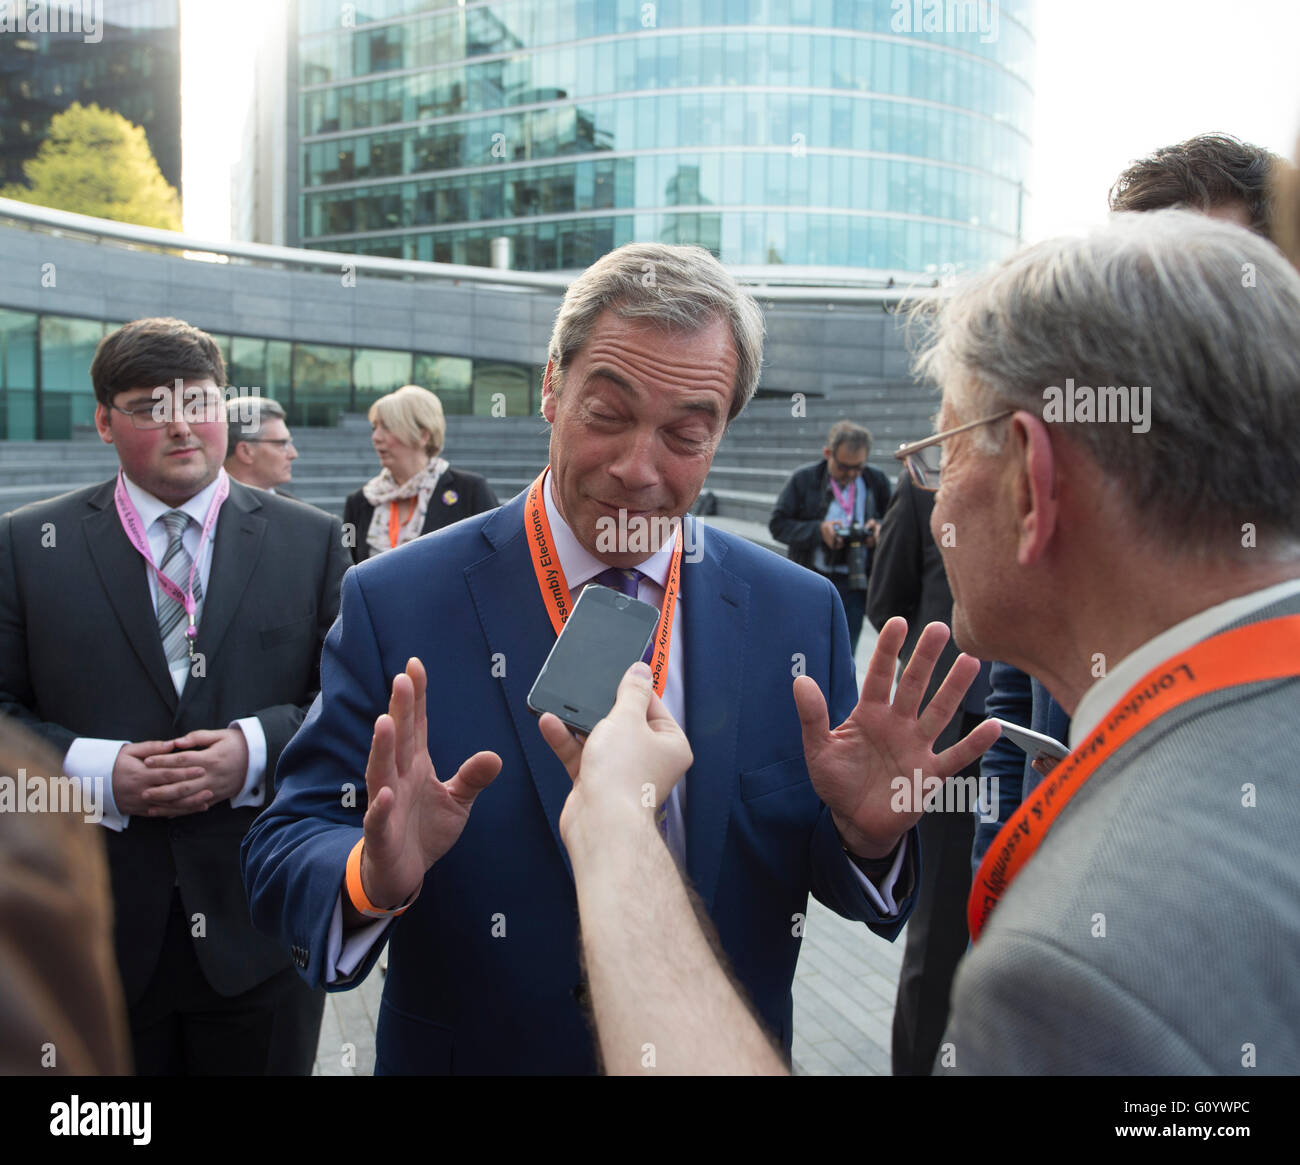 City Hall, London, UK. 6th May, 2016. Nigel Farage and UKIP supporters arrive at City Hall for the Declaration of - Stock Image